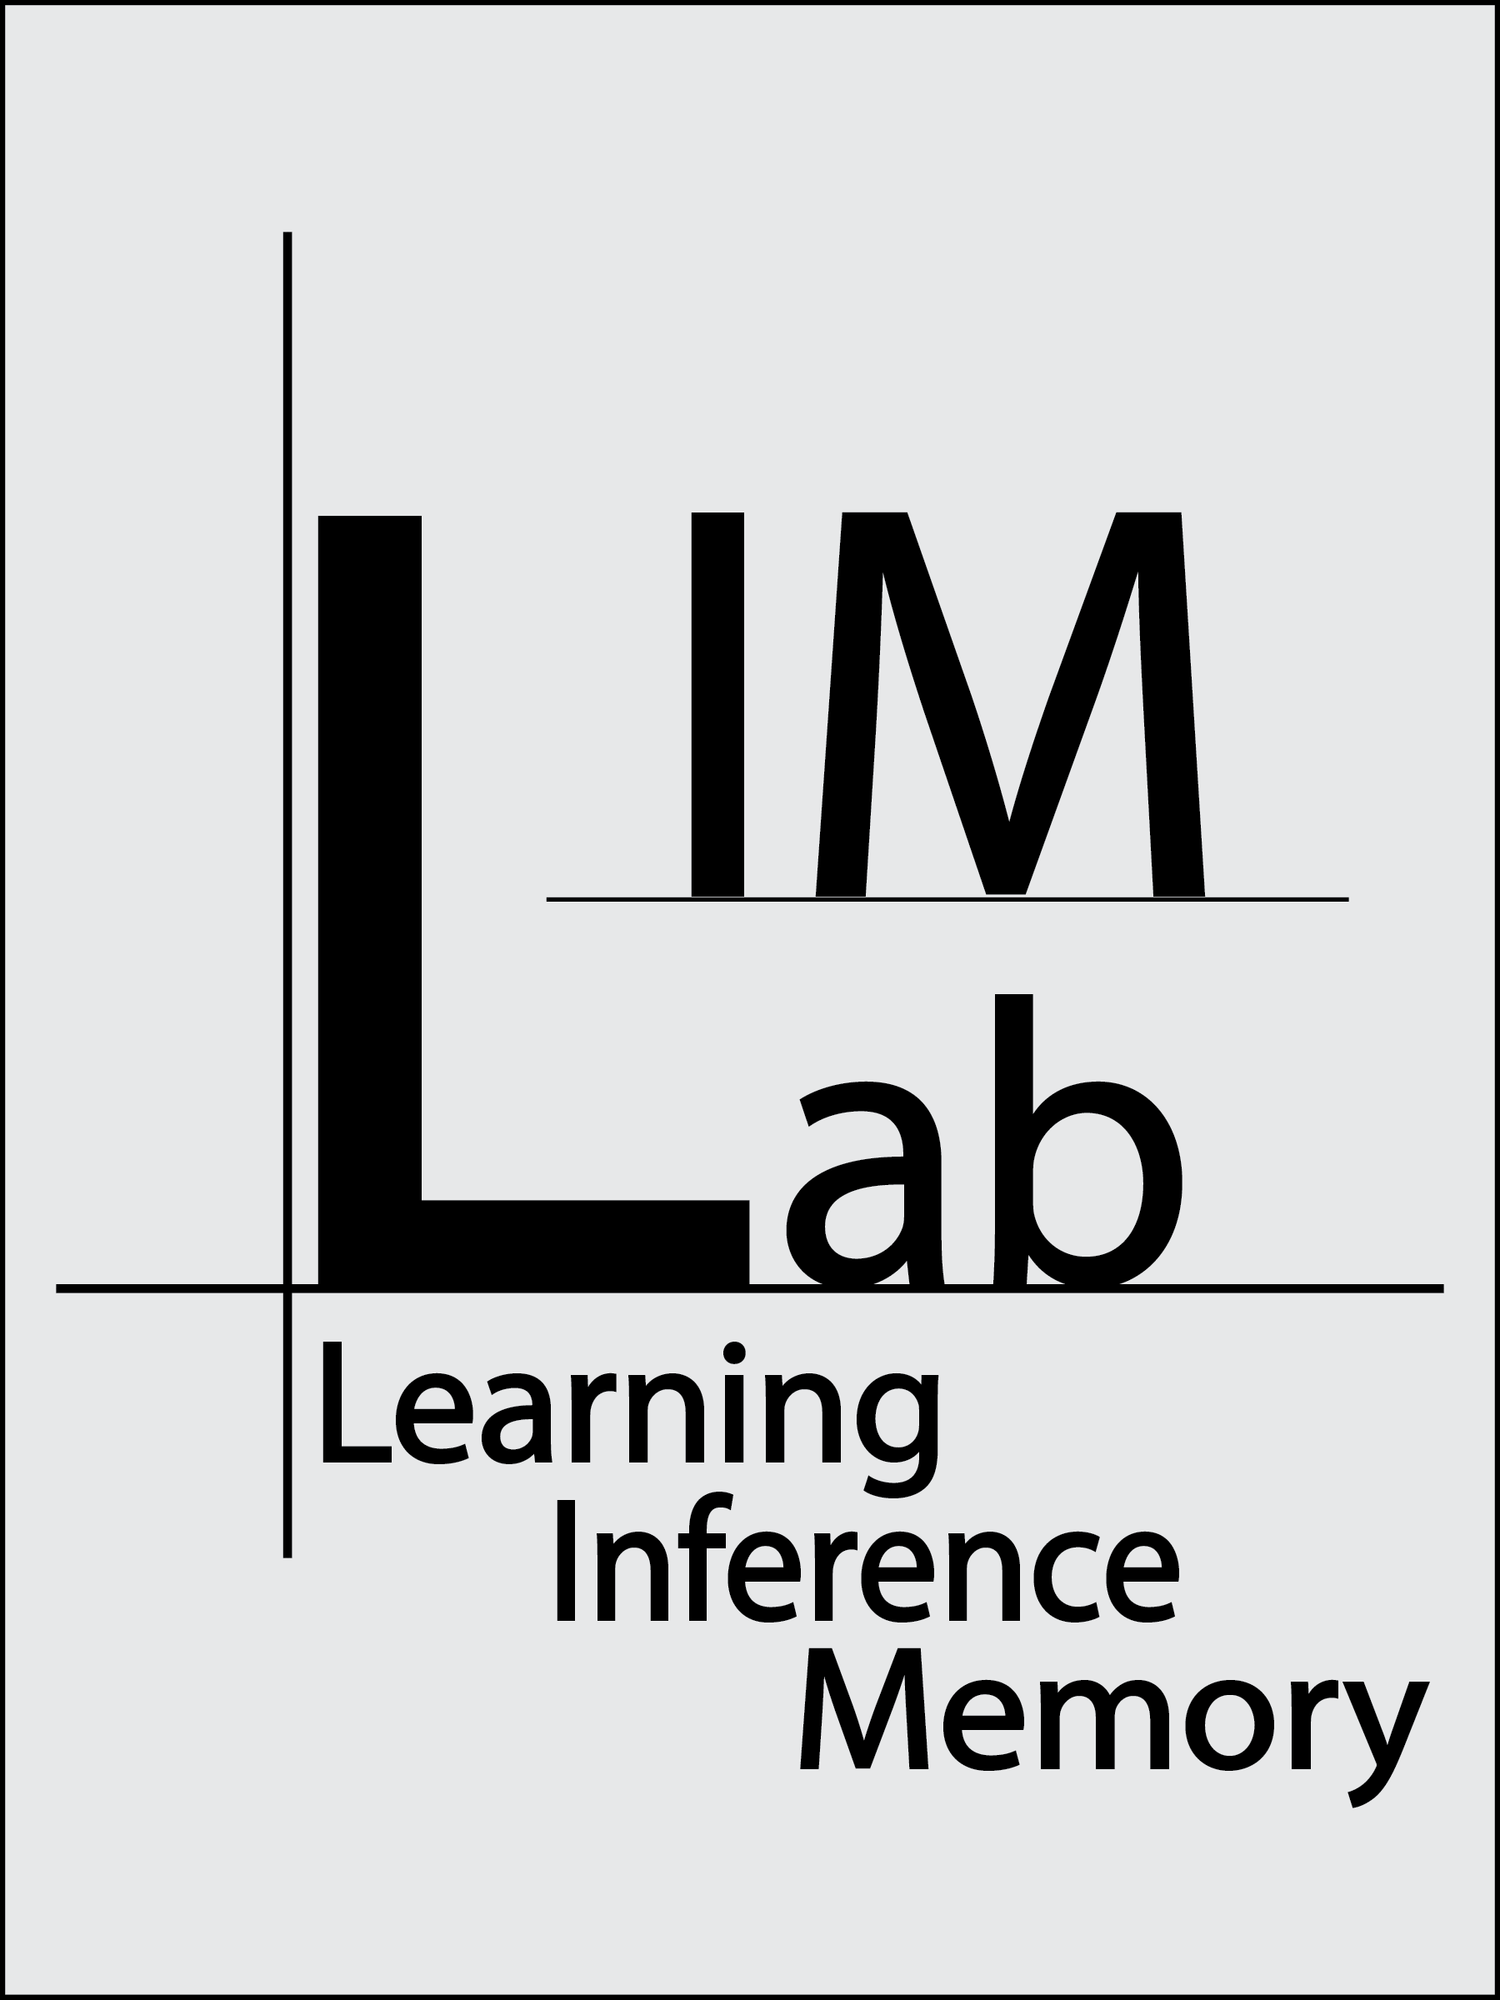 Learning, Inference & Memory